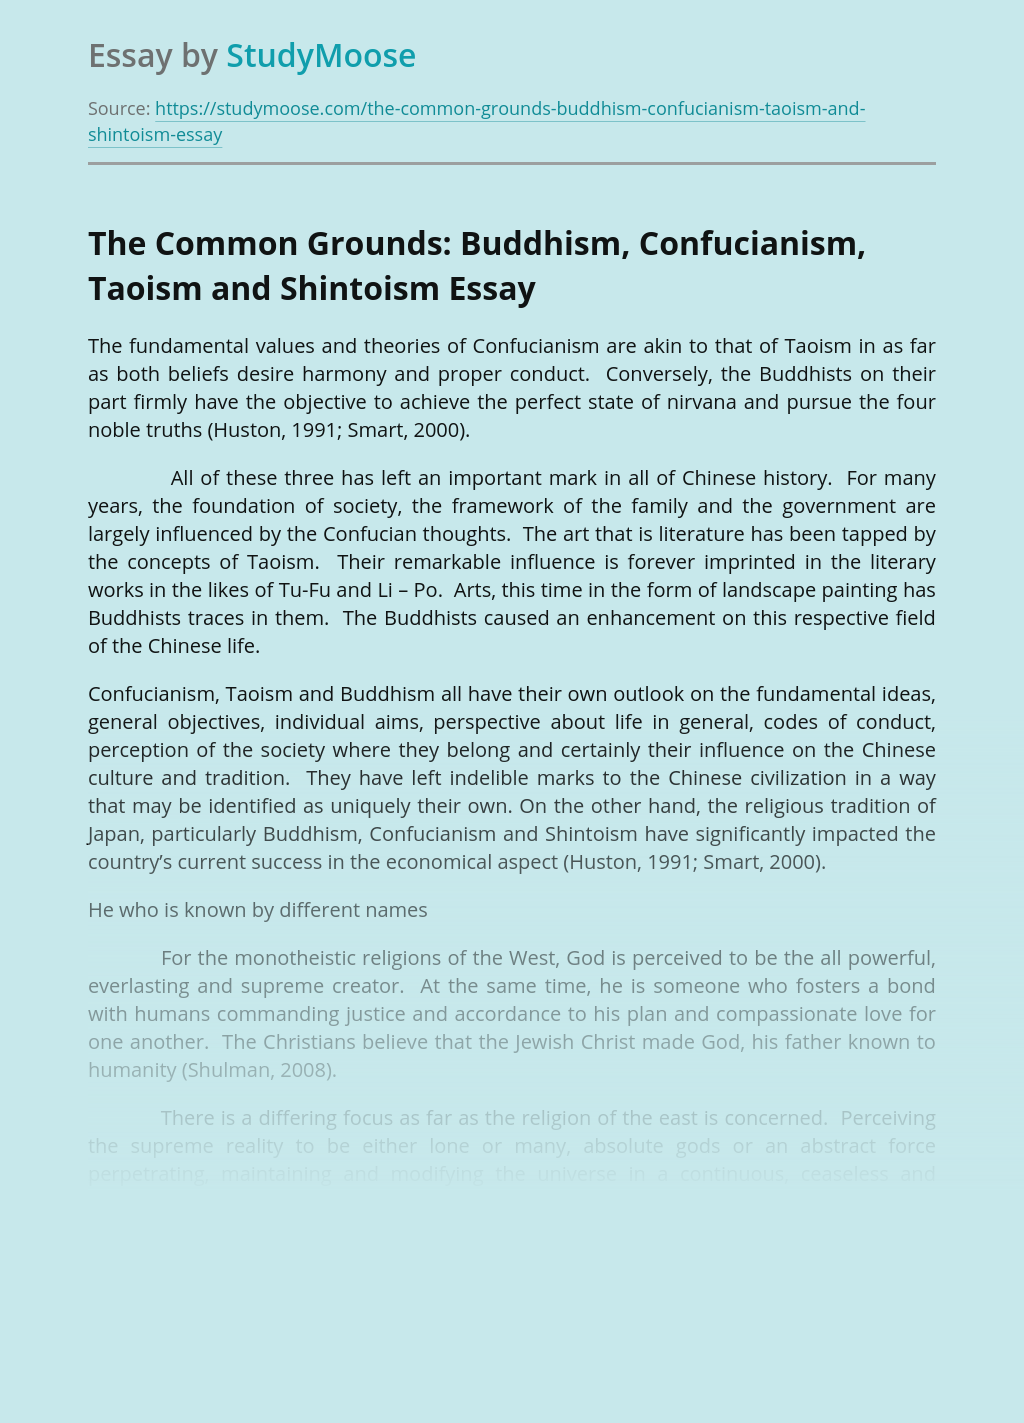 The Common Grounds:  Buddhism, Confucianism, Taoism and Shintoism